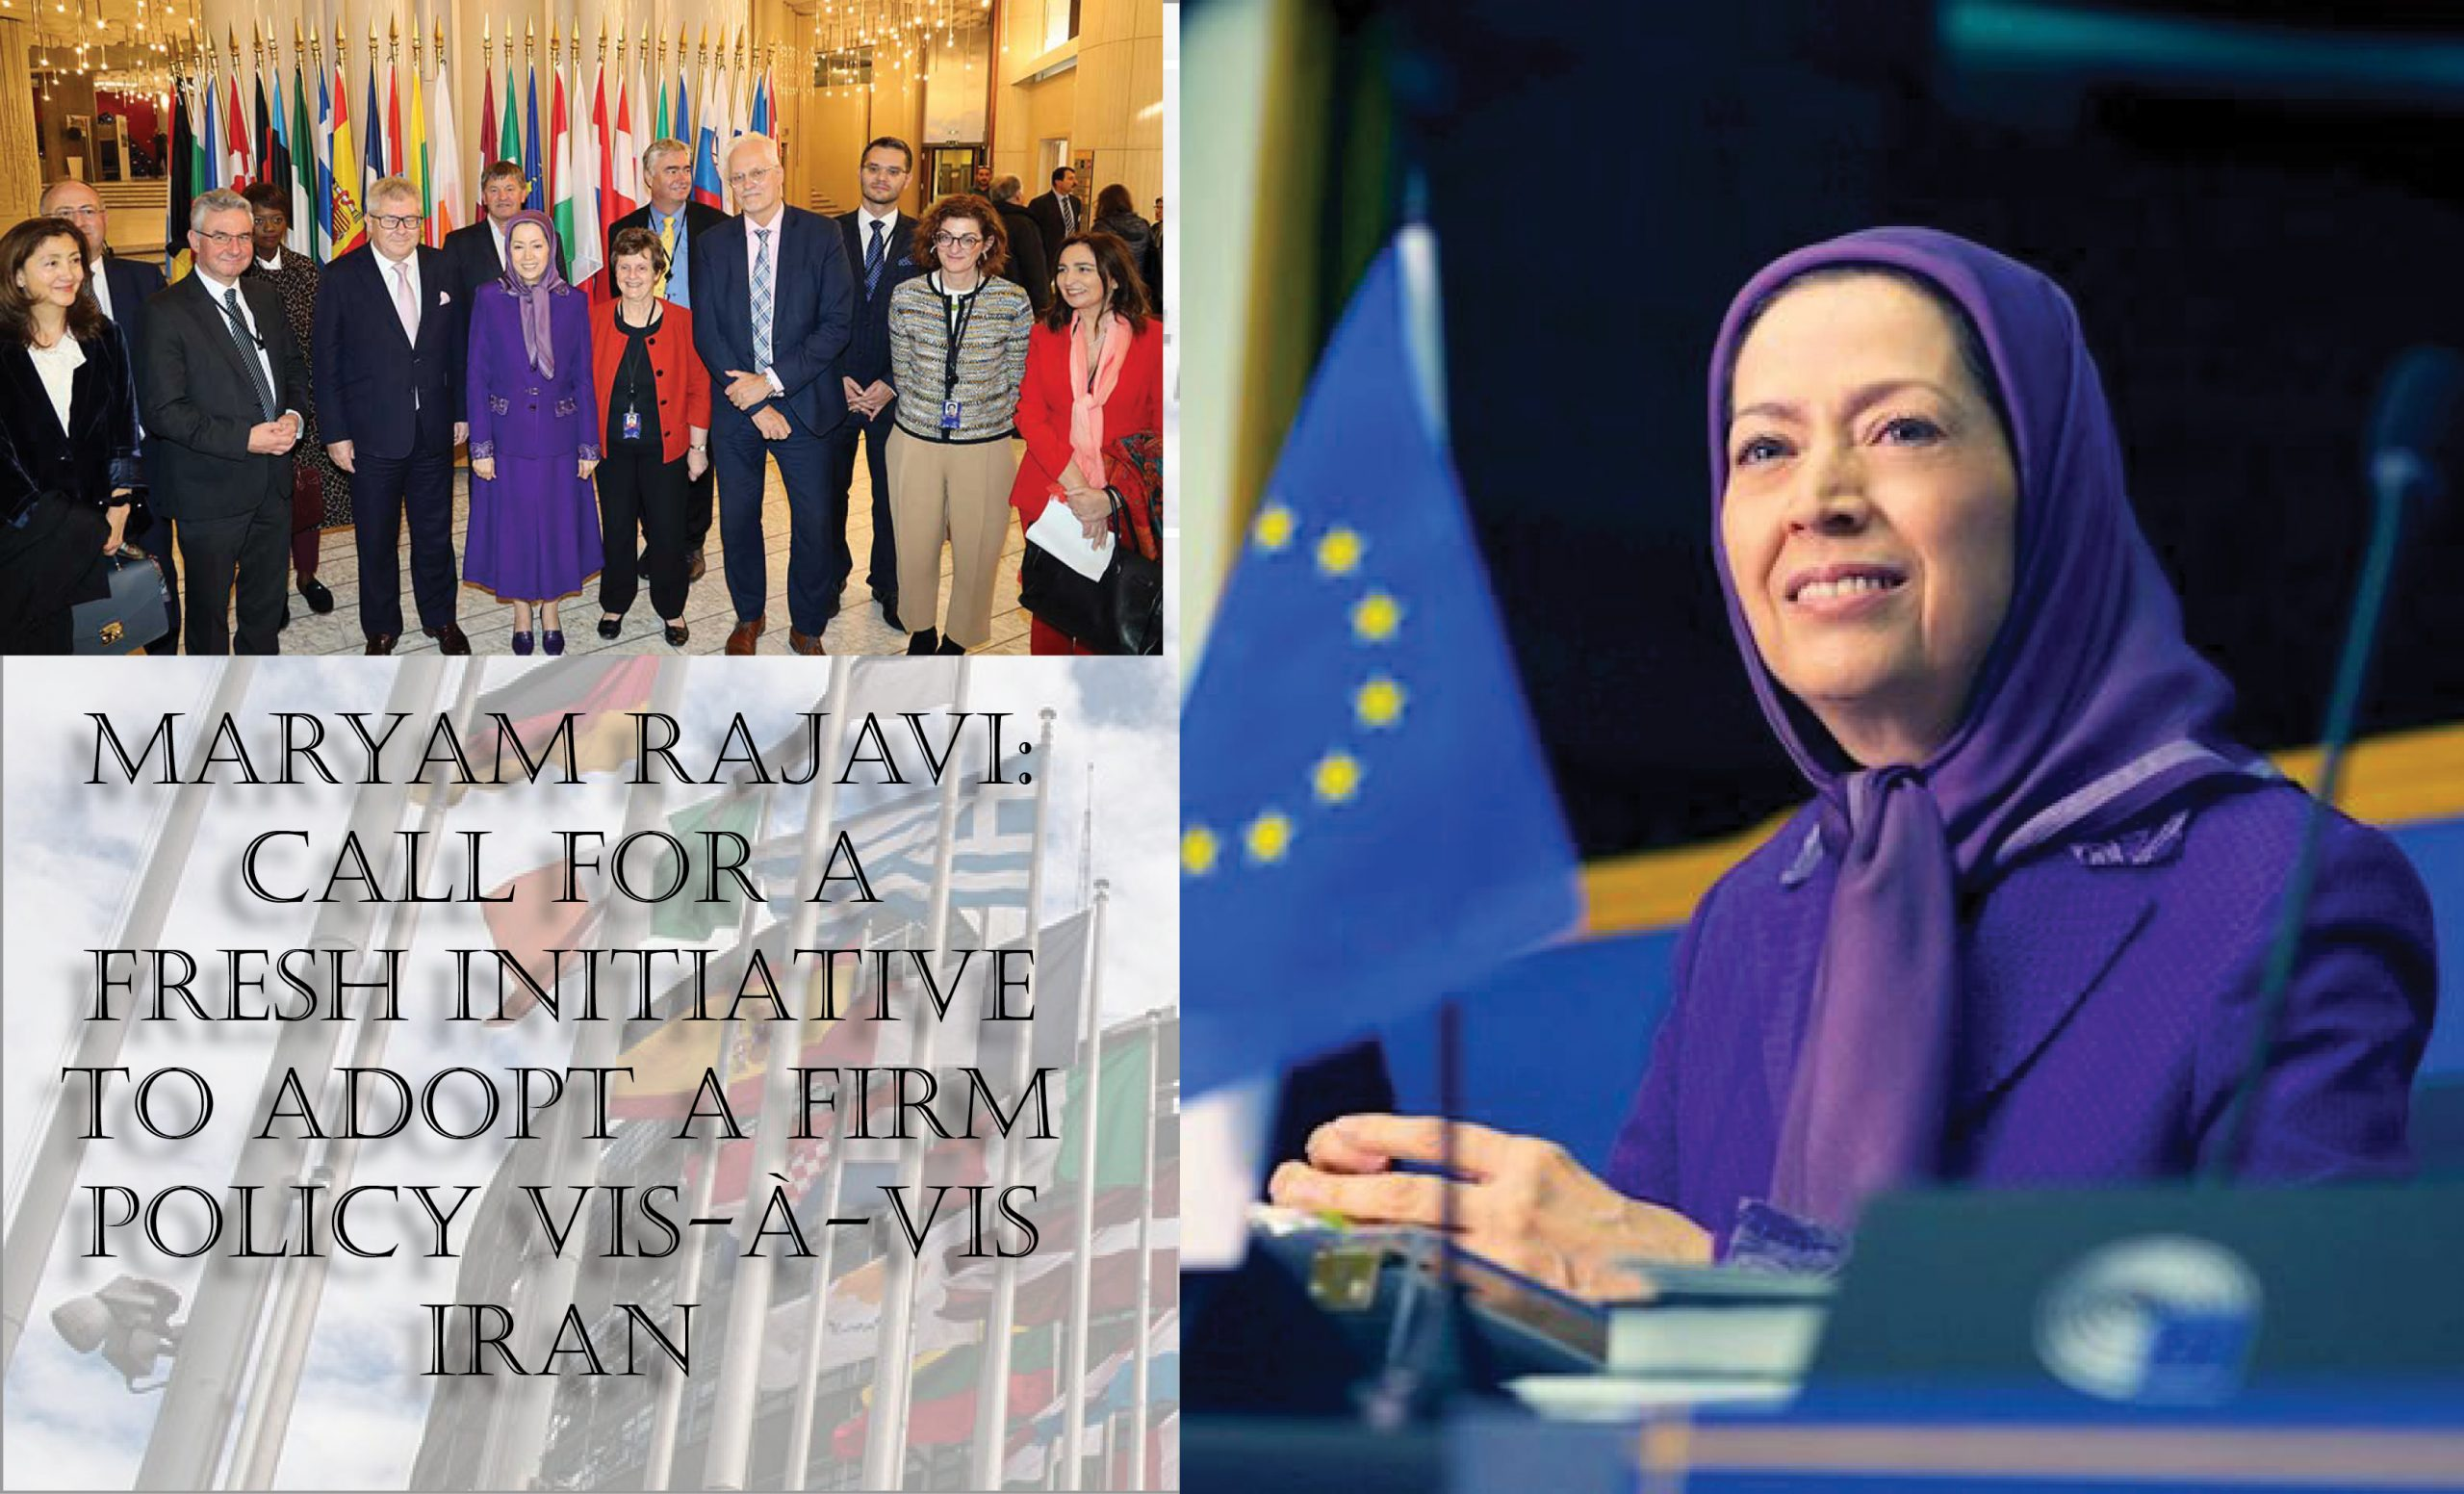 European parliament voicing support for a strong policy vis-a-vis the Iranian regime's human rights violations and warmongering